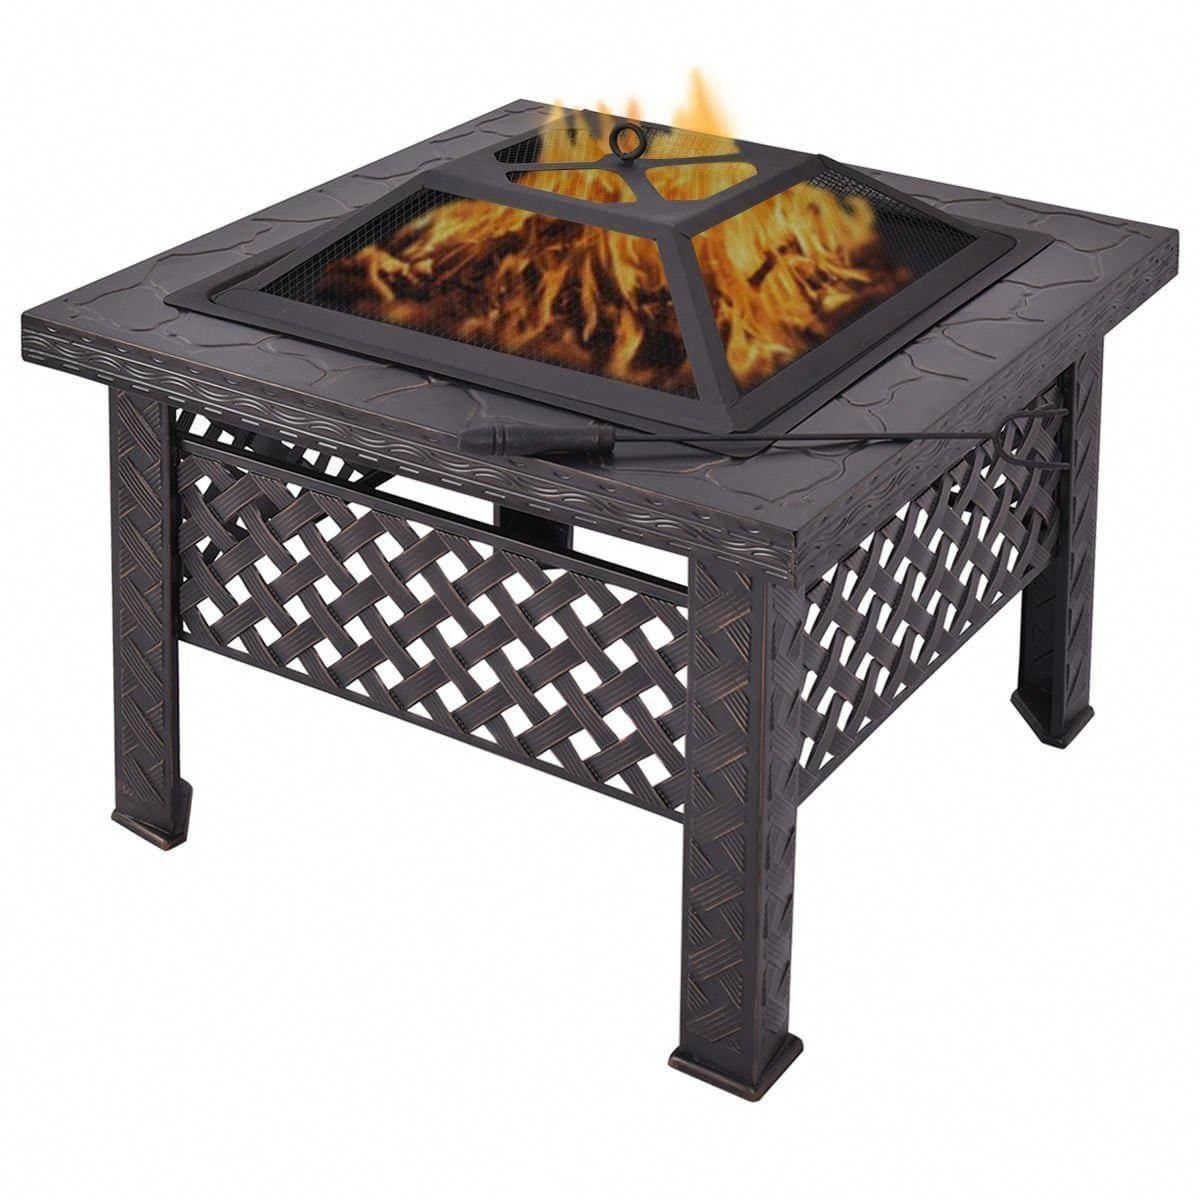 Top 10 Best Outdoor Fire Pit In 2020 Buyer S Guide Hqreview Concrete Fire Pits Outdoor Fire Pit Designs Fire Pit Patio